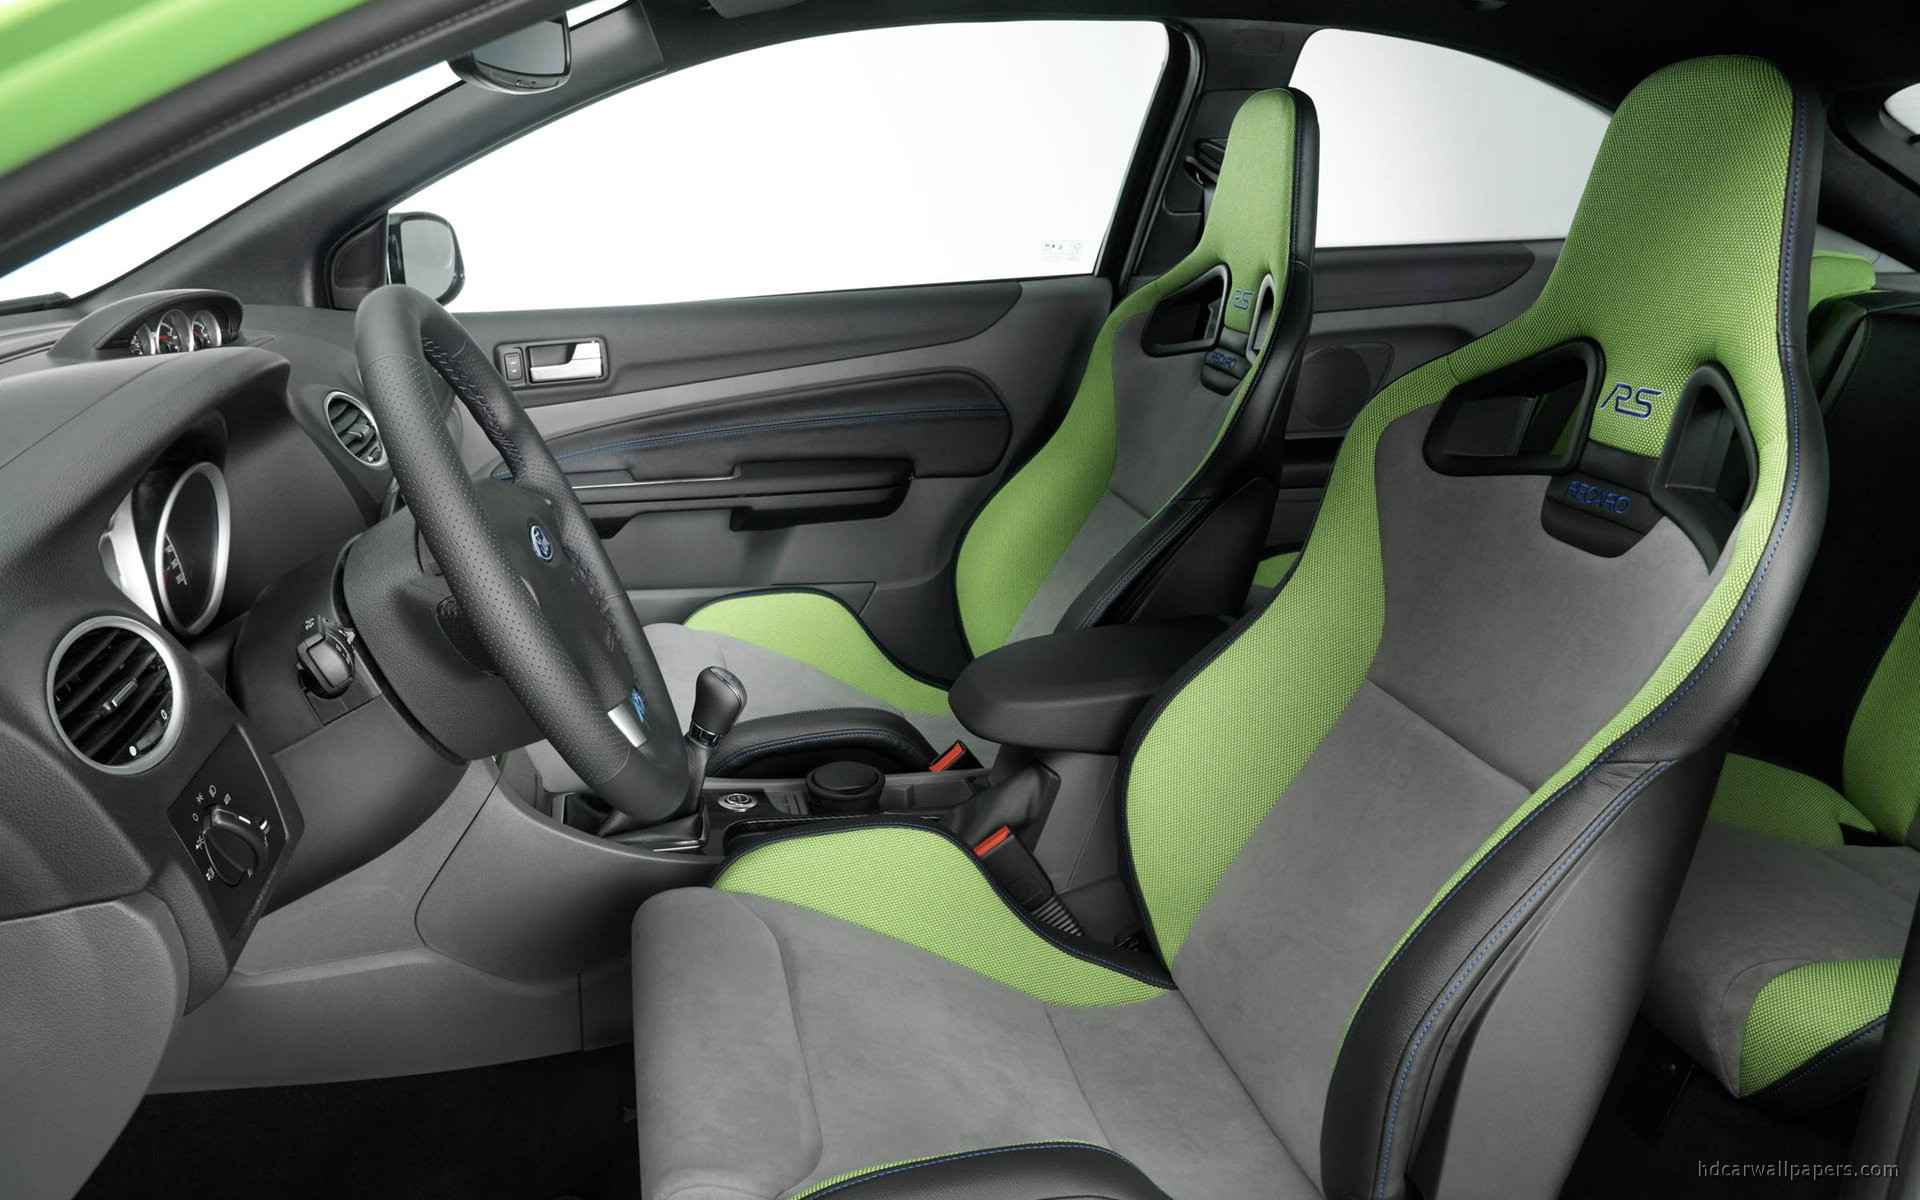 Ford Focus Rs Interior Wallpaper Hd Car Wallpapers Id 701